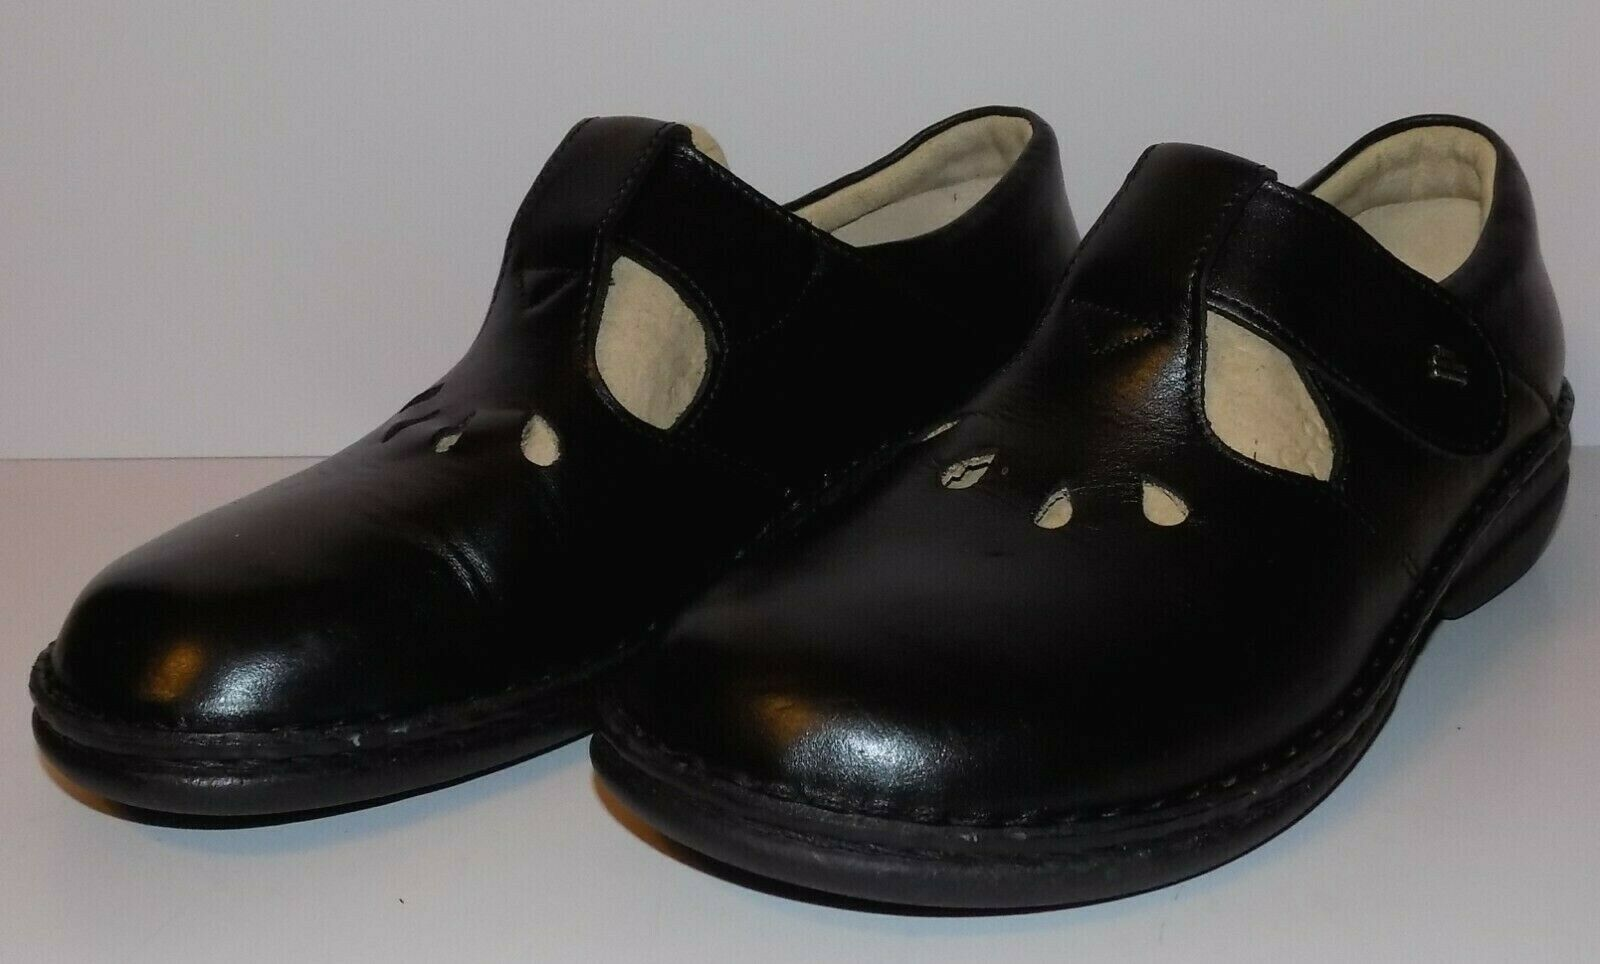 BARELY WORN FINN COMFORT TOFINO LEATHER MARY JANES SIZE 8.5 US/39 EUR!